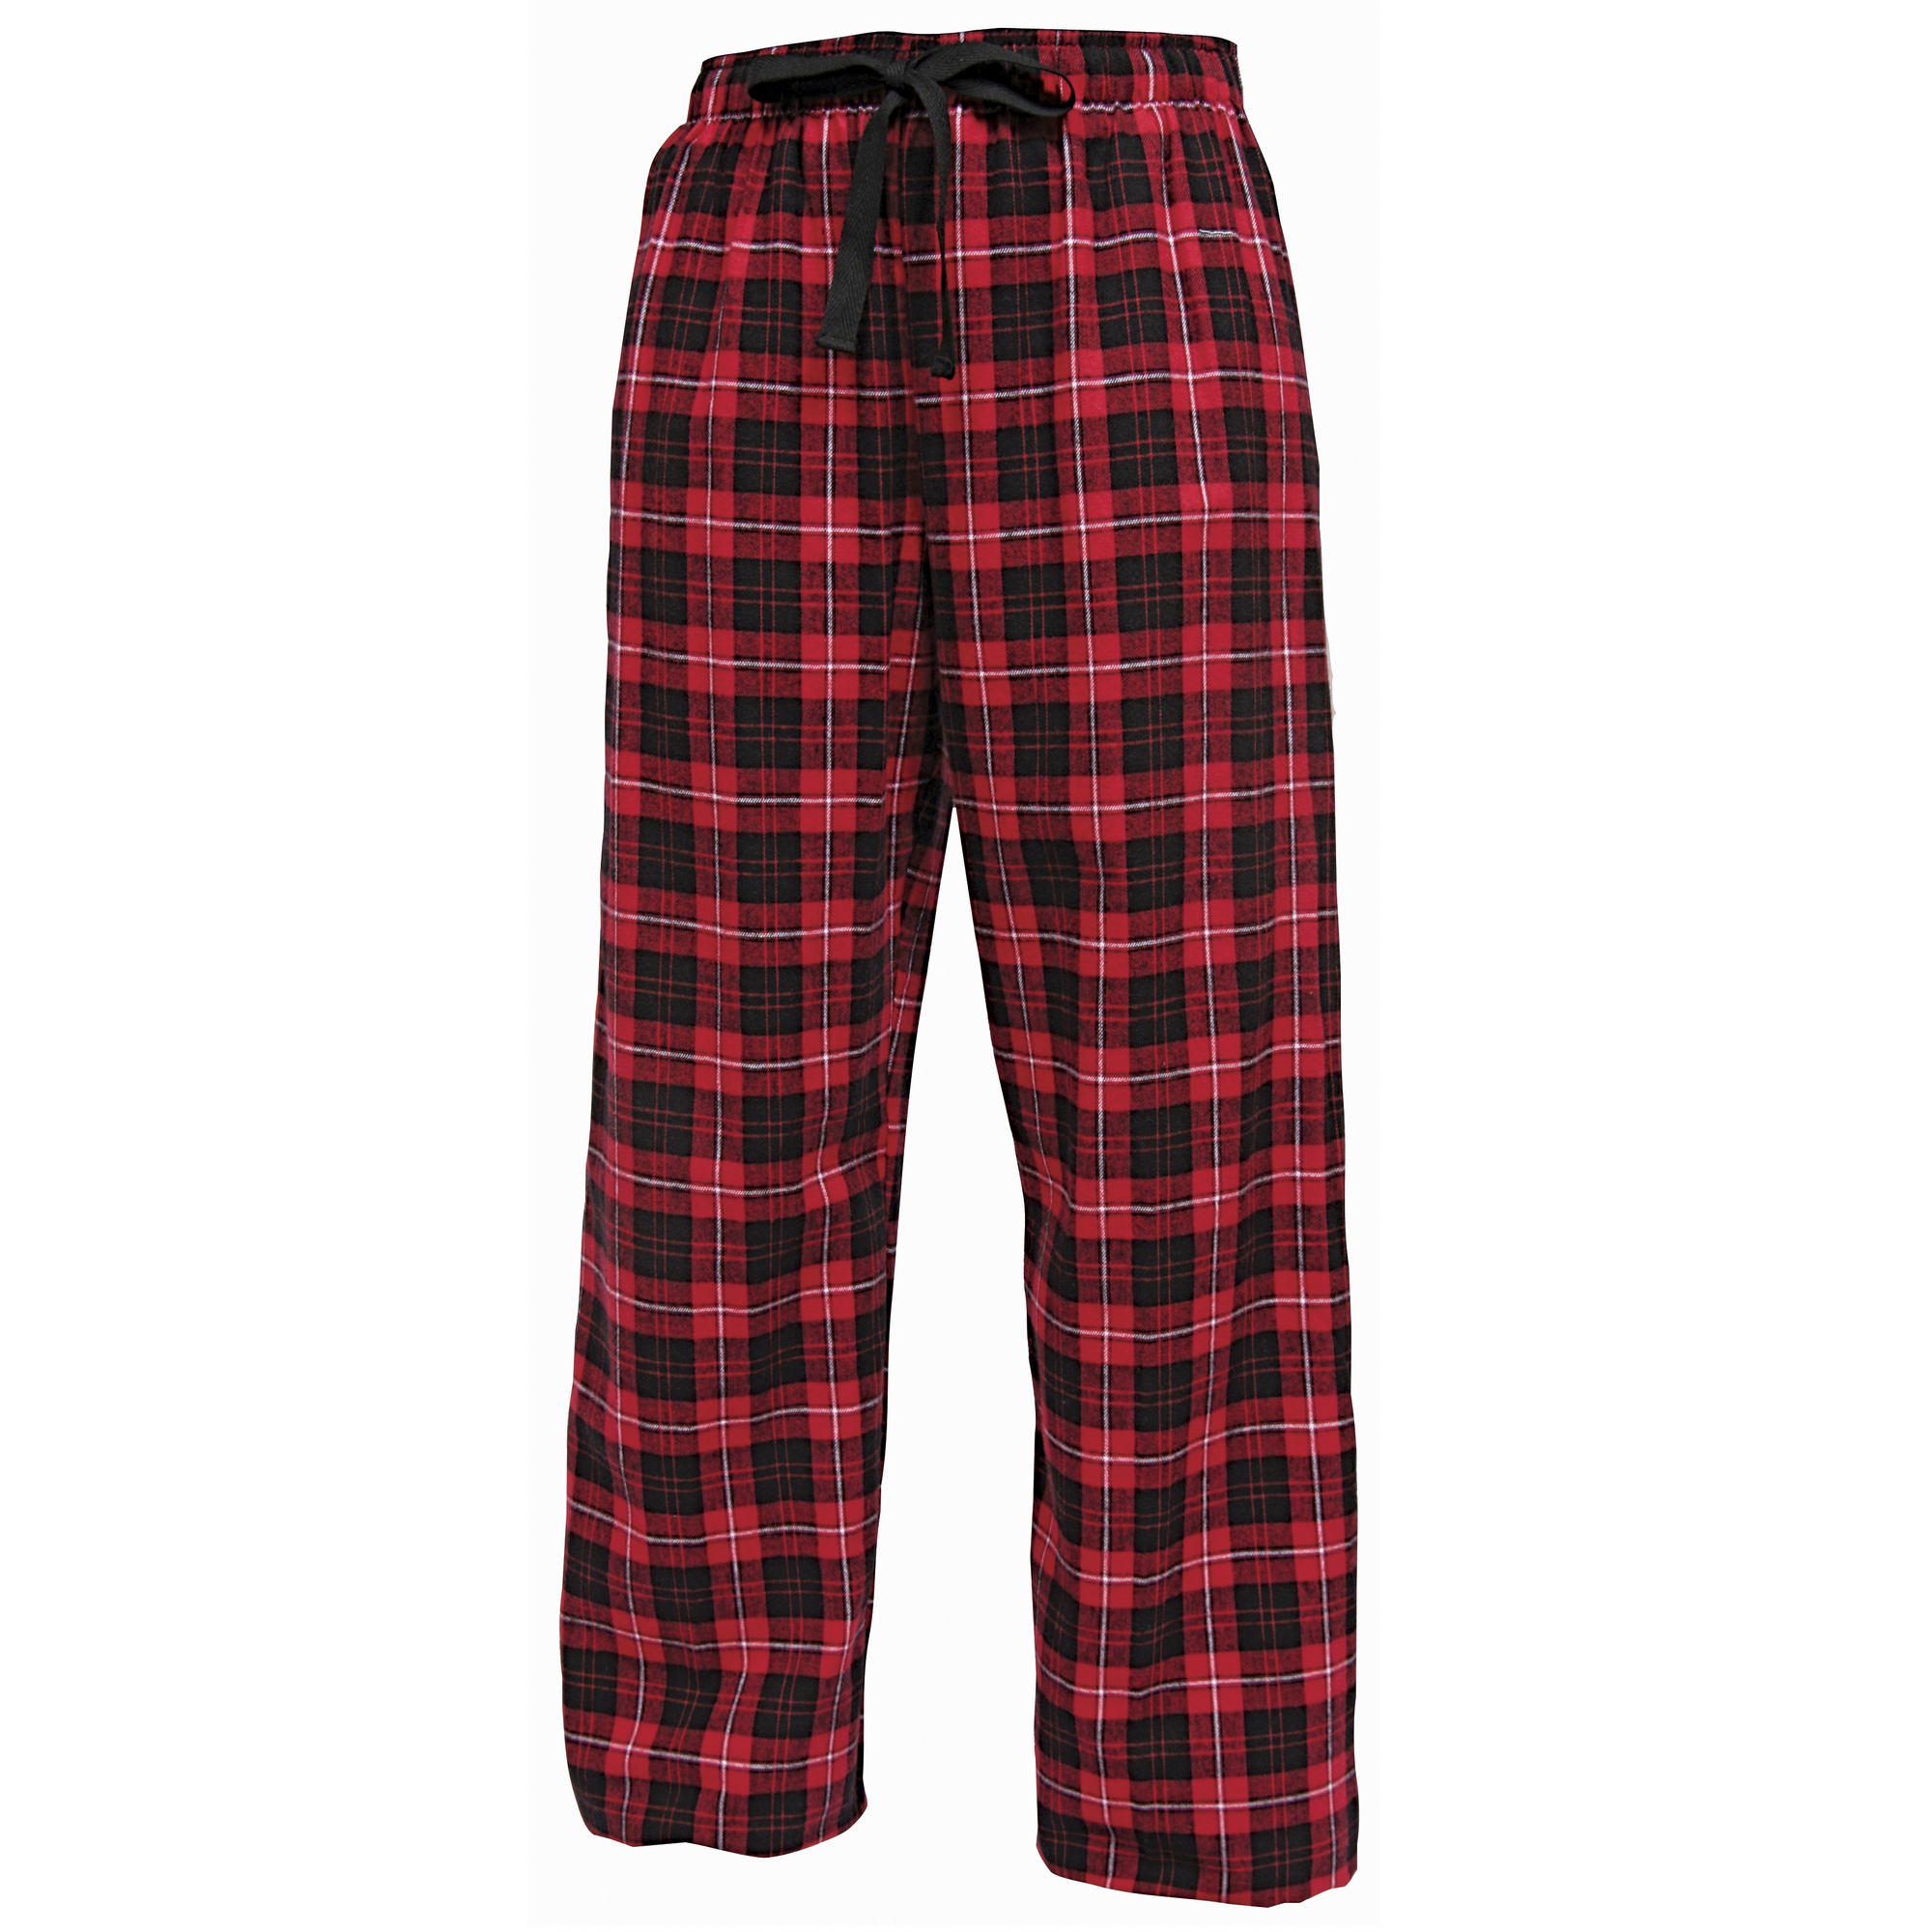 Plaid Sleep Pants